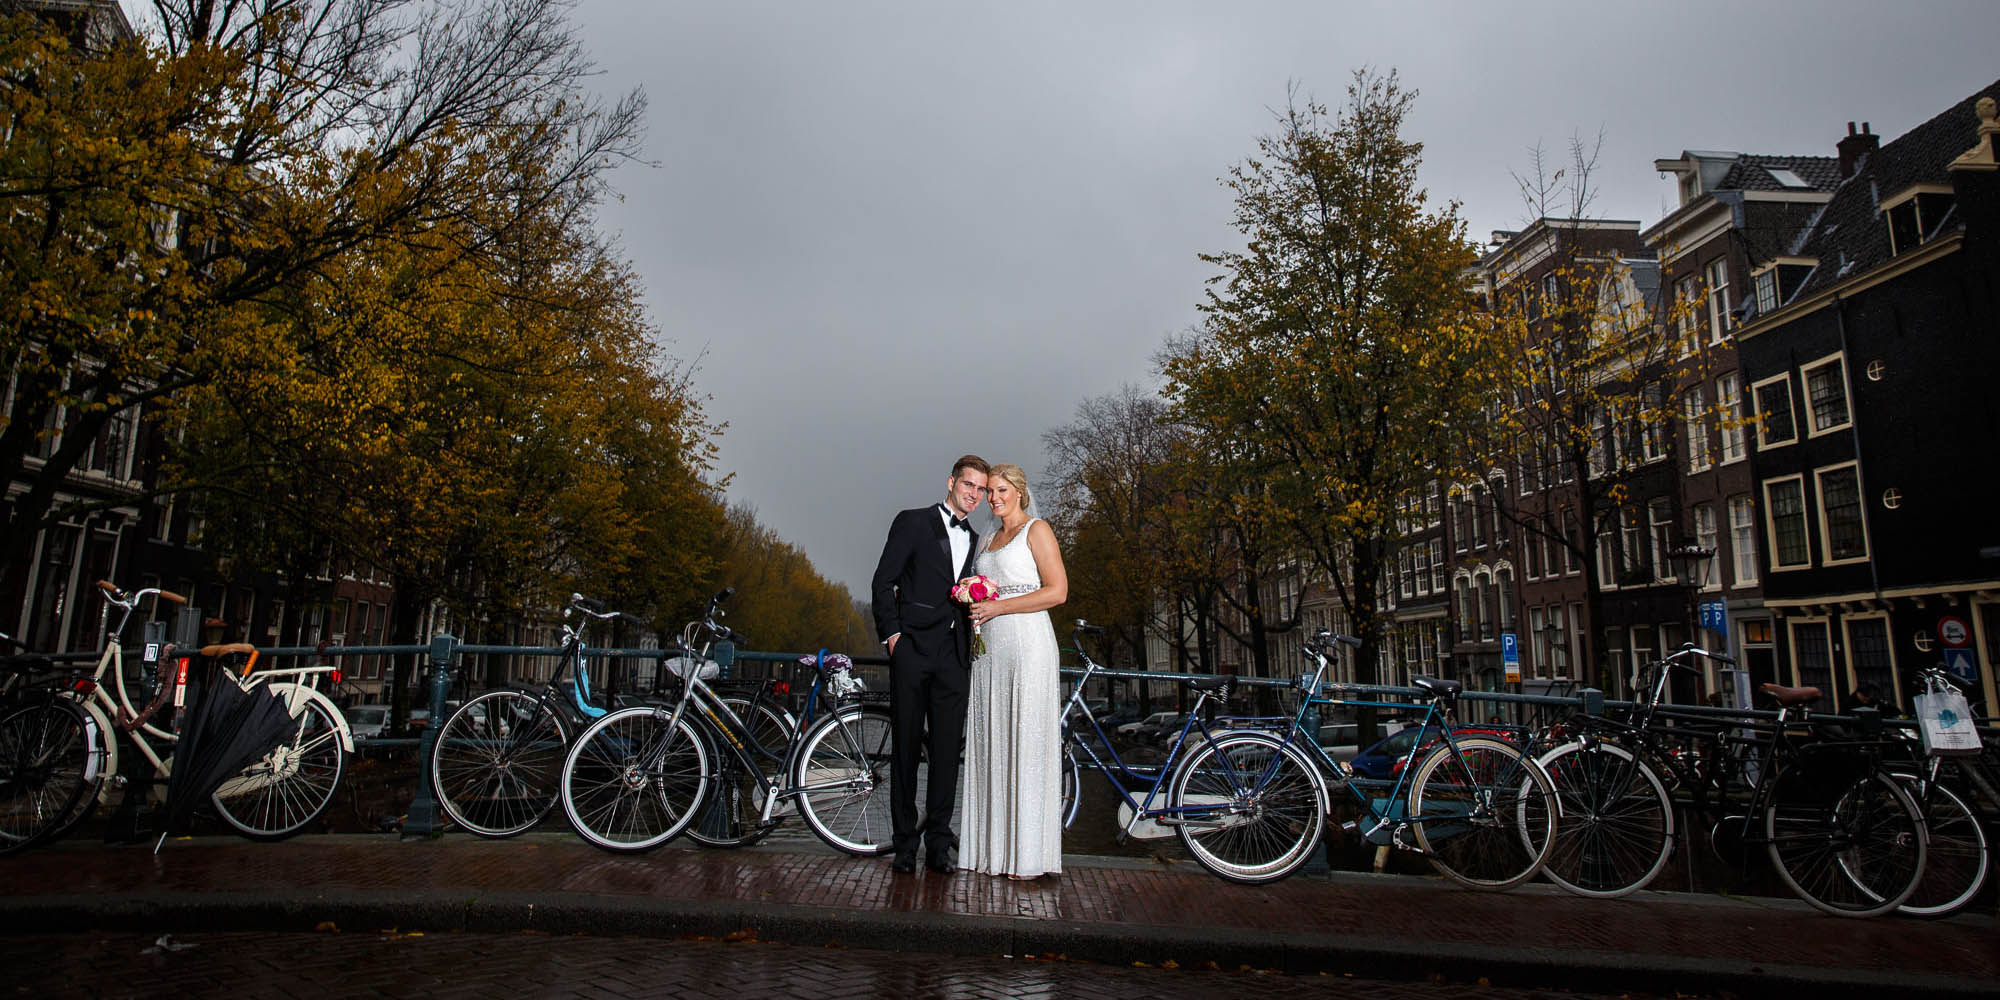 http://weddingphotography-holland.com/wp-content/uploads/2014/11/international-wedding-amsterdam.jpg